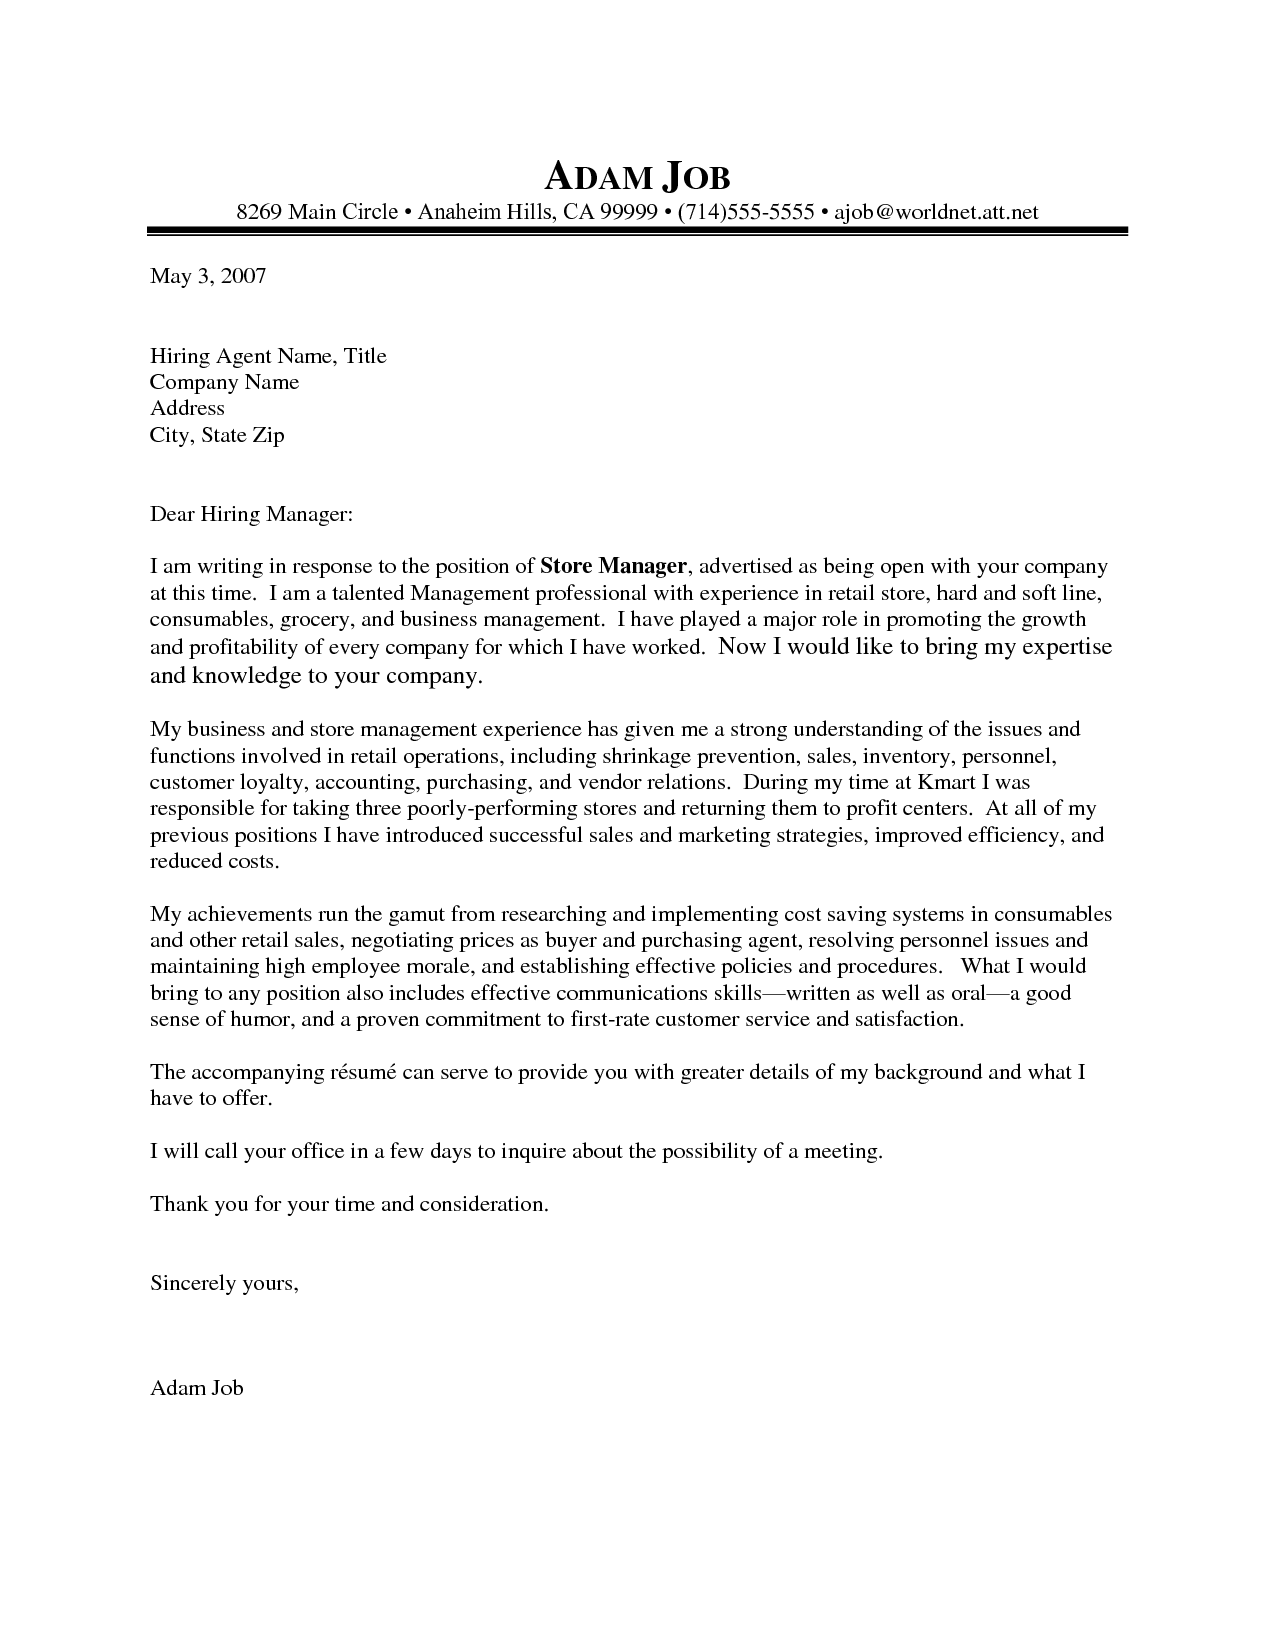 Cover Letter Accounting Unique Application Letter Sample For Any Position College Admissions Review